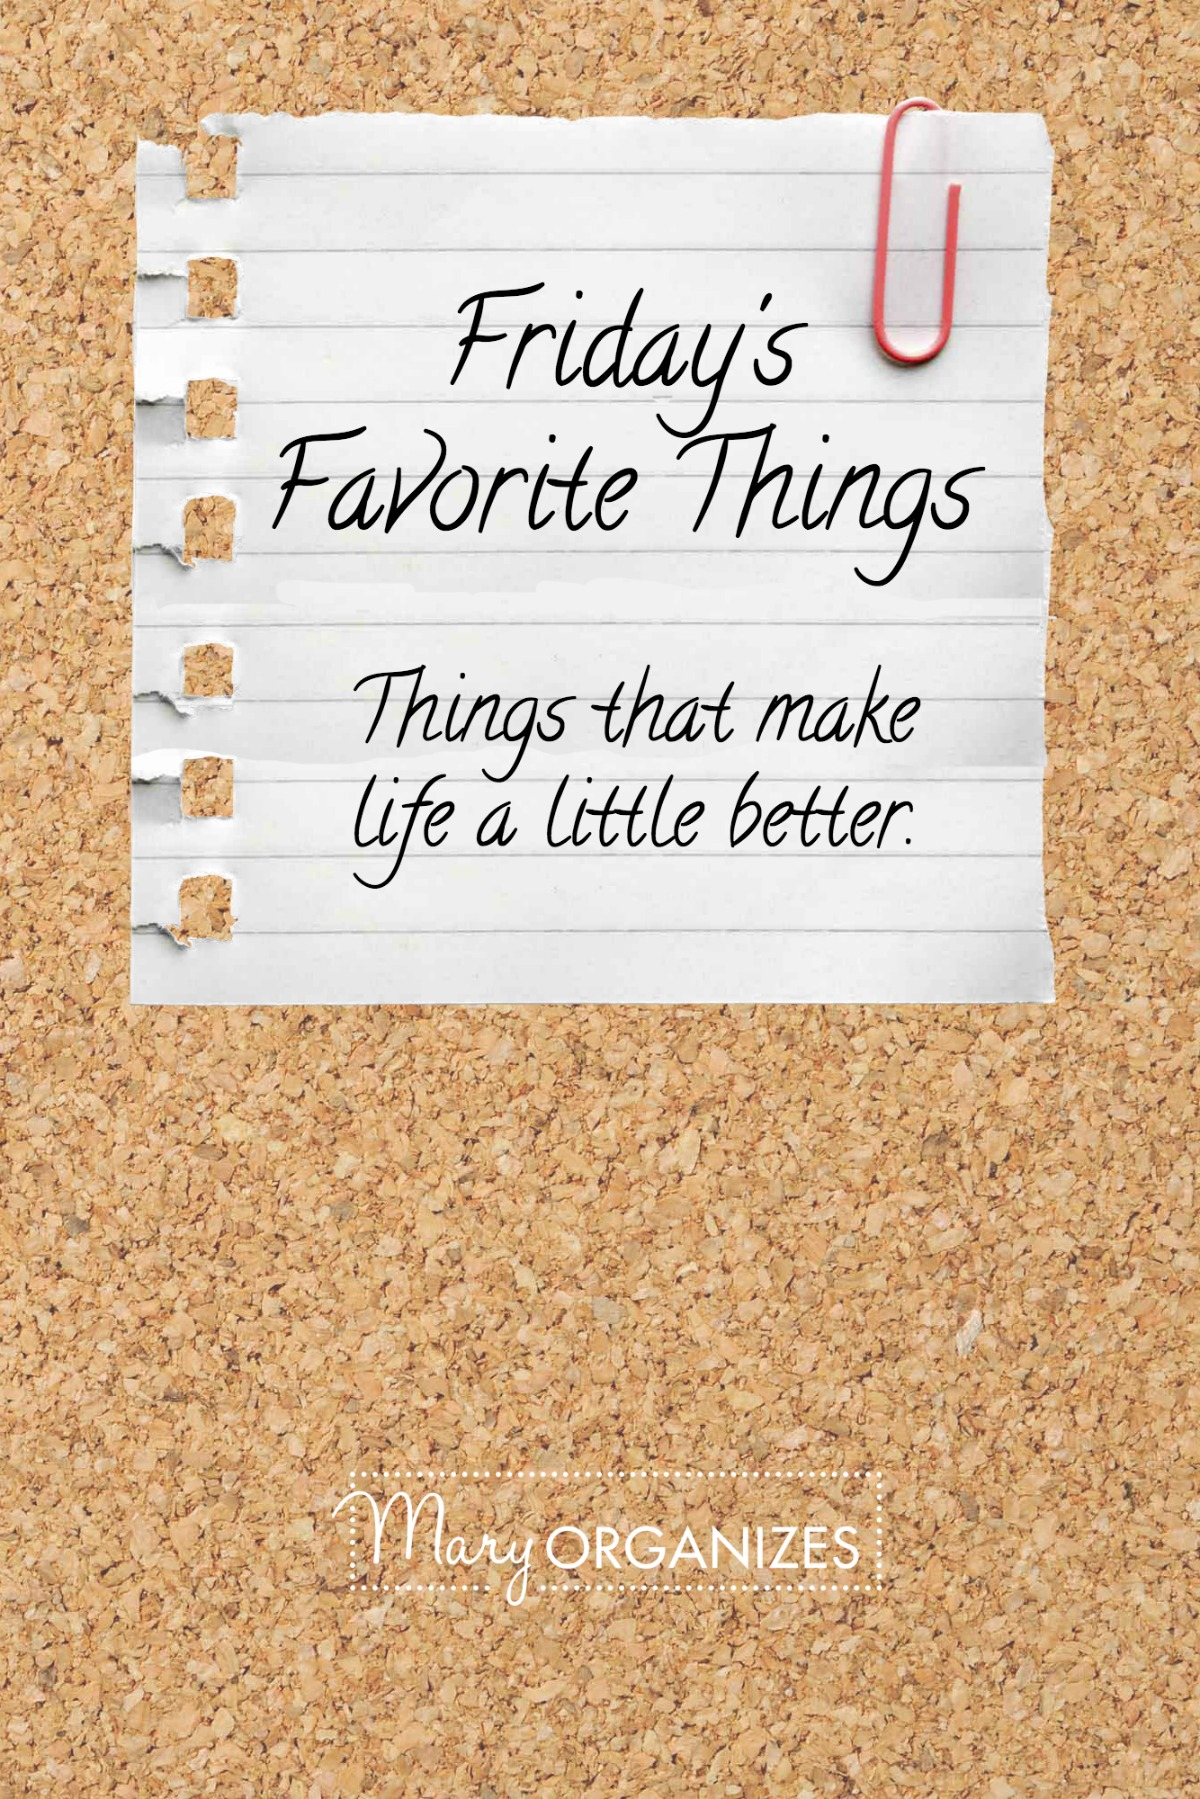 Fridays Favorite Things - Things that make life a little better -v